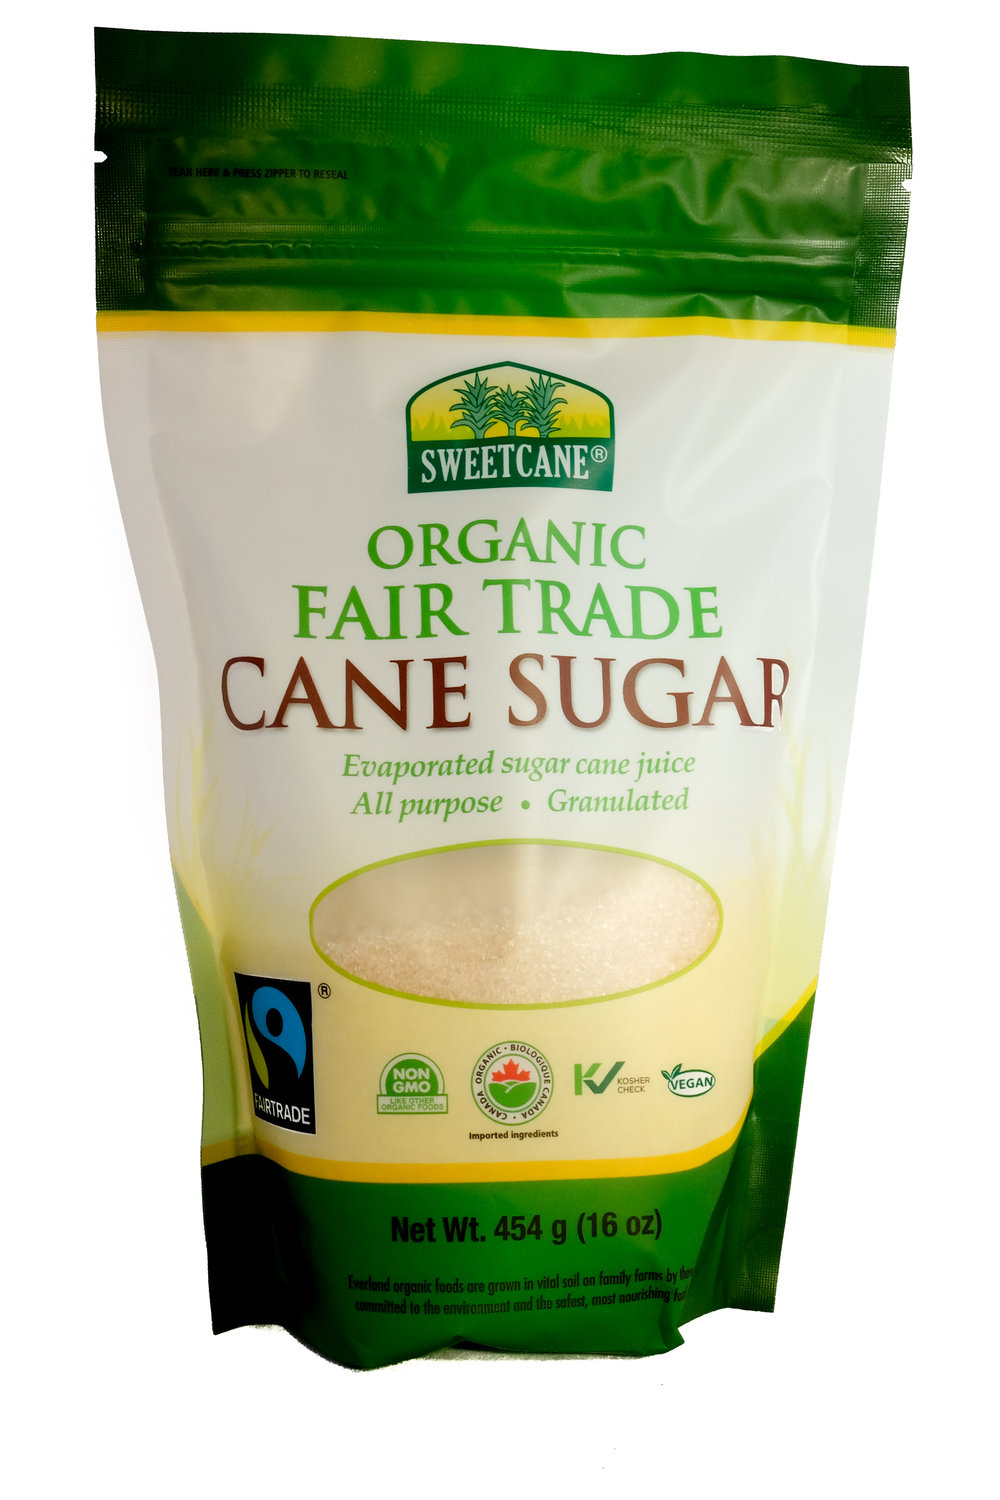 Organic Fair trade Cane Sugar